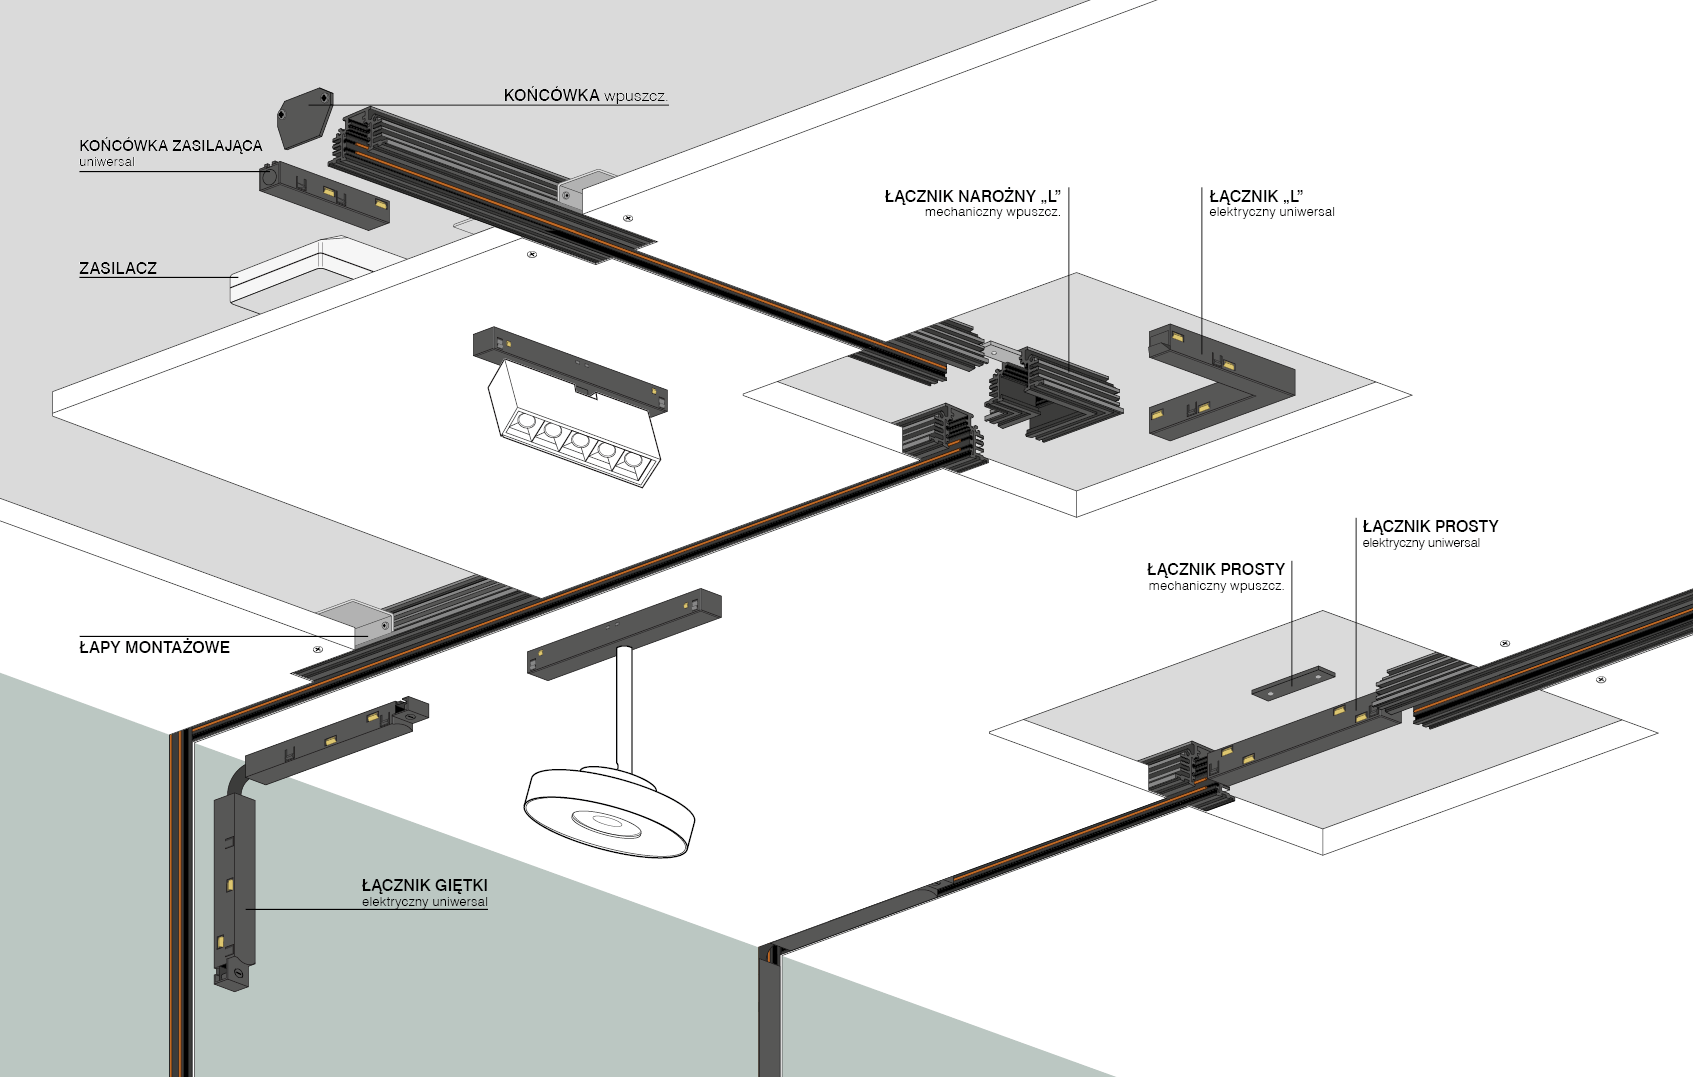 Magnet recessed rail system - an example of the solution and the equipment needed.